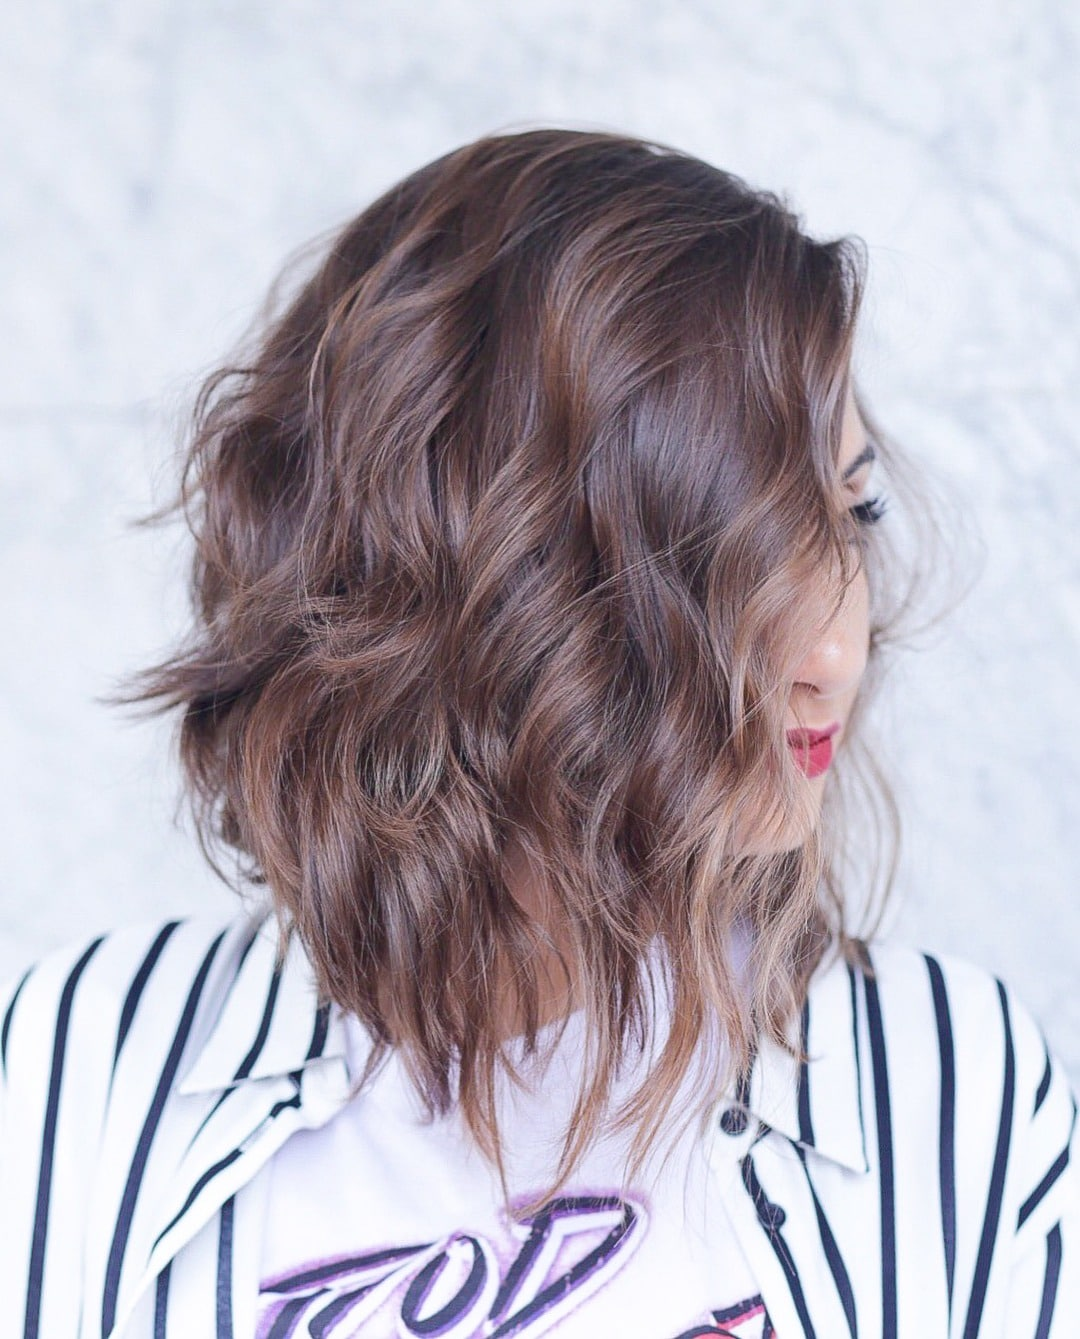 Graduated bob: Woman with chestnut brown long bob with graduated layers at the back posing in a studio